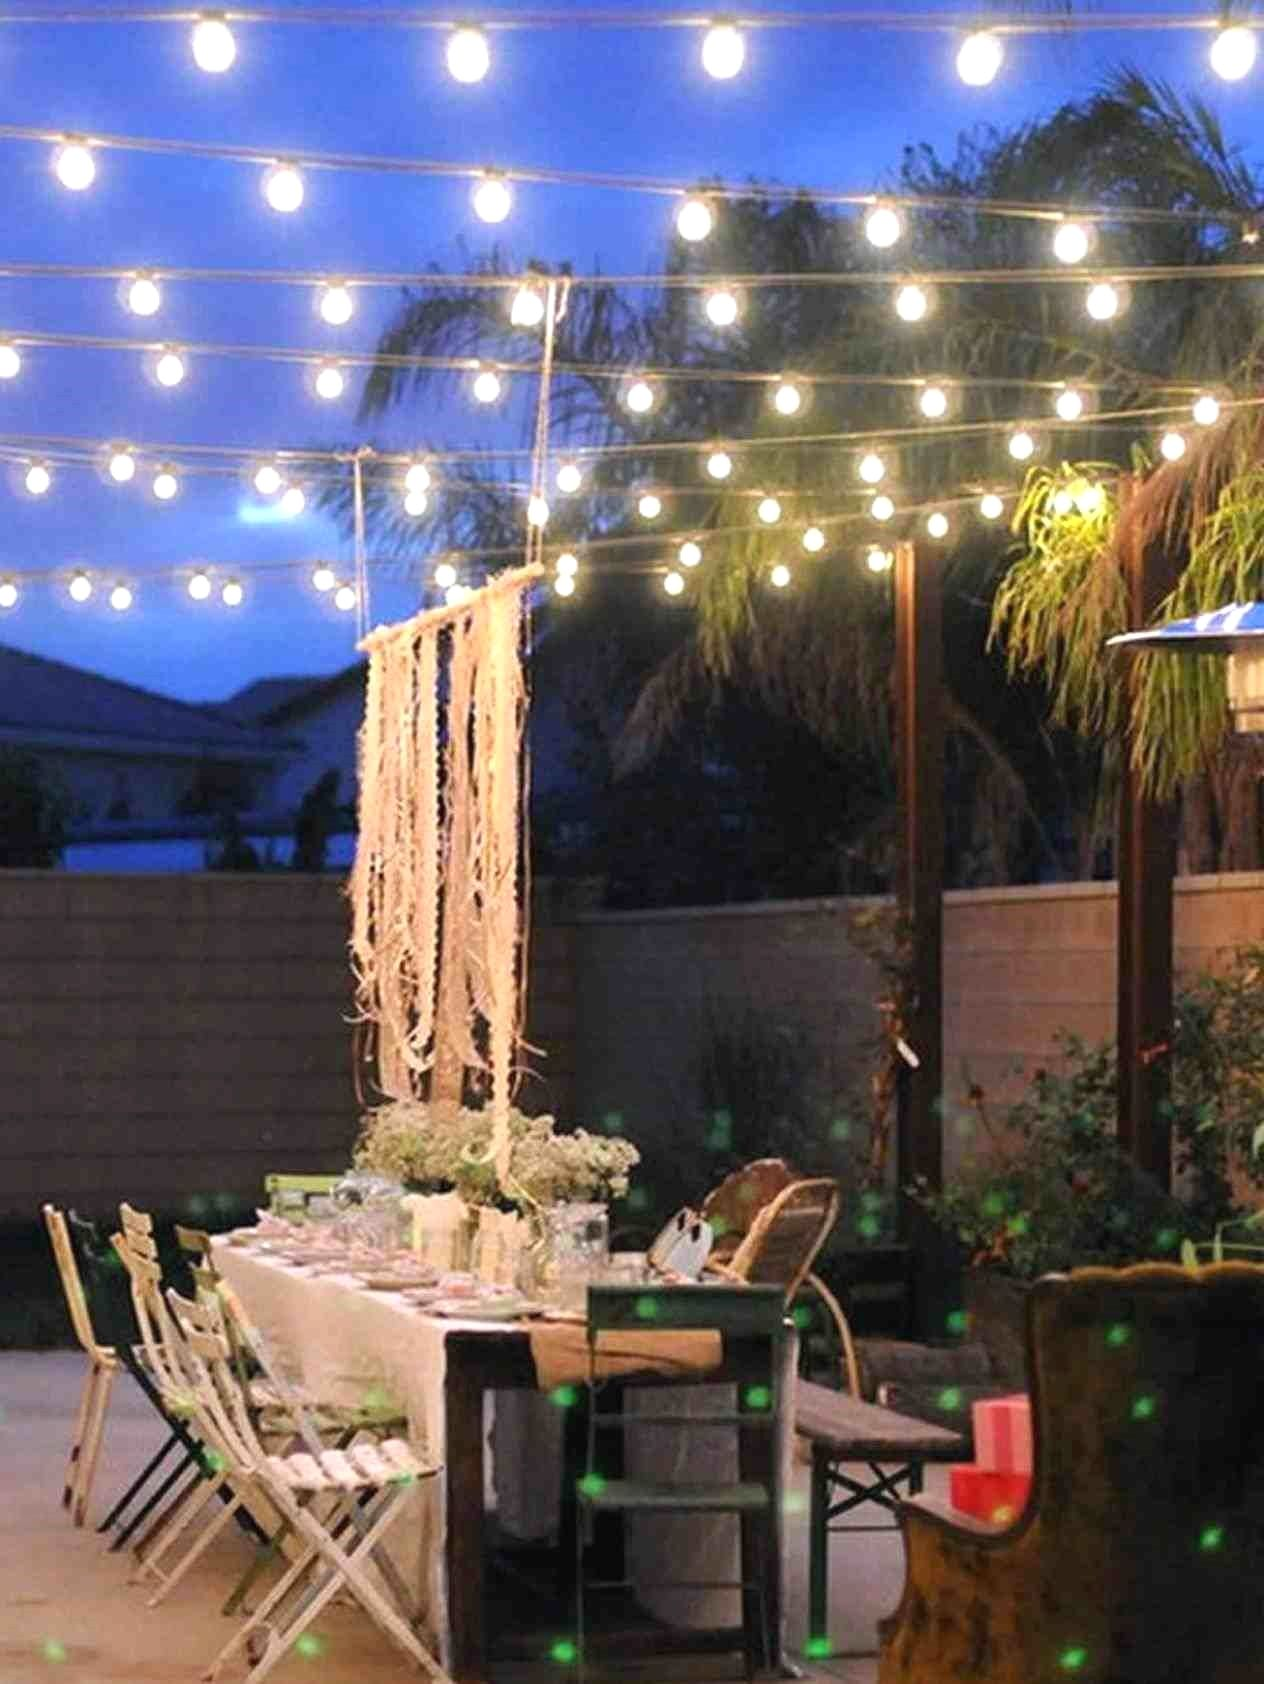 outdoor patio lighting ideas pictures on 10 easy patio lighting ideas you can do for your backyard entertainment outdoor lighting design rustic outdoor decor backyard lighting 10 easy patio lighting ideas you can do